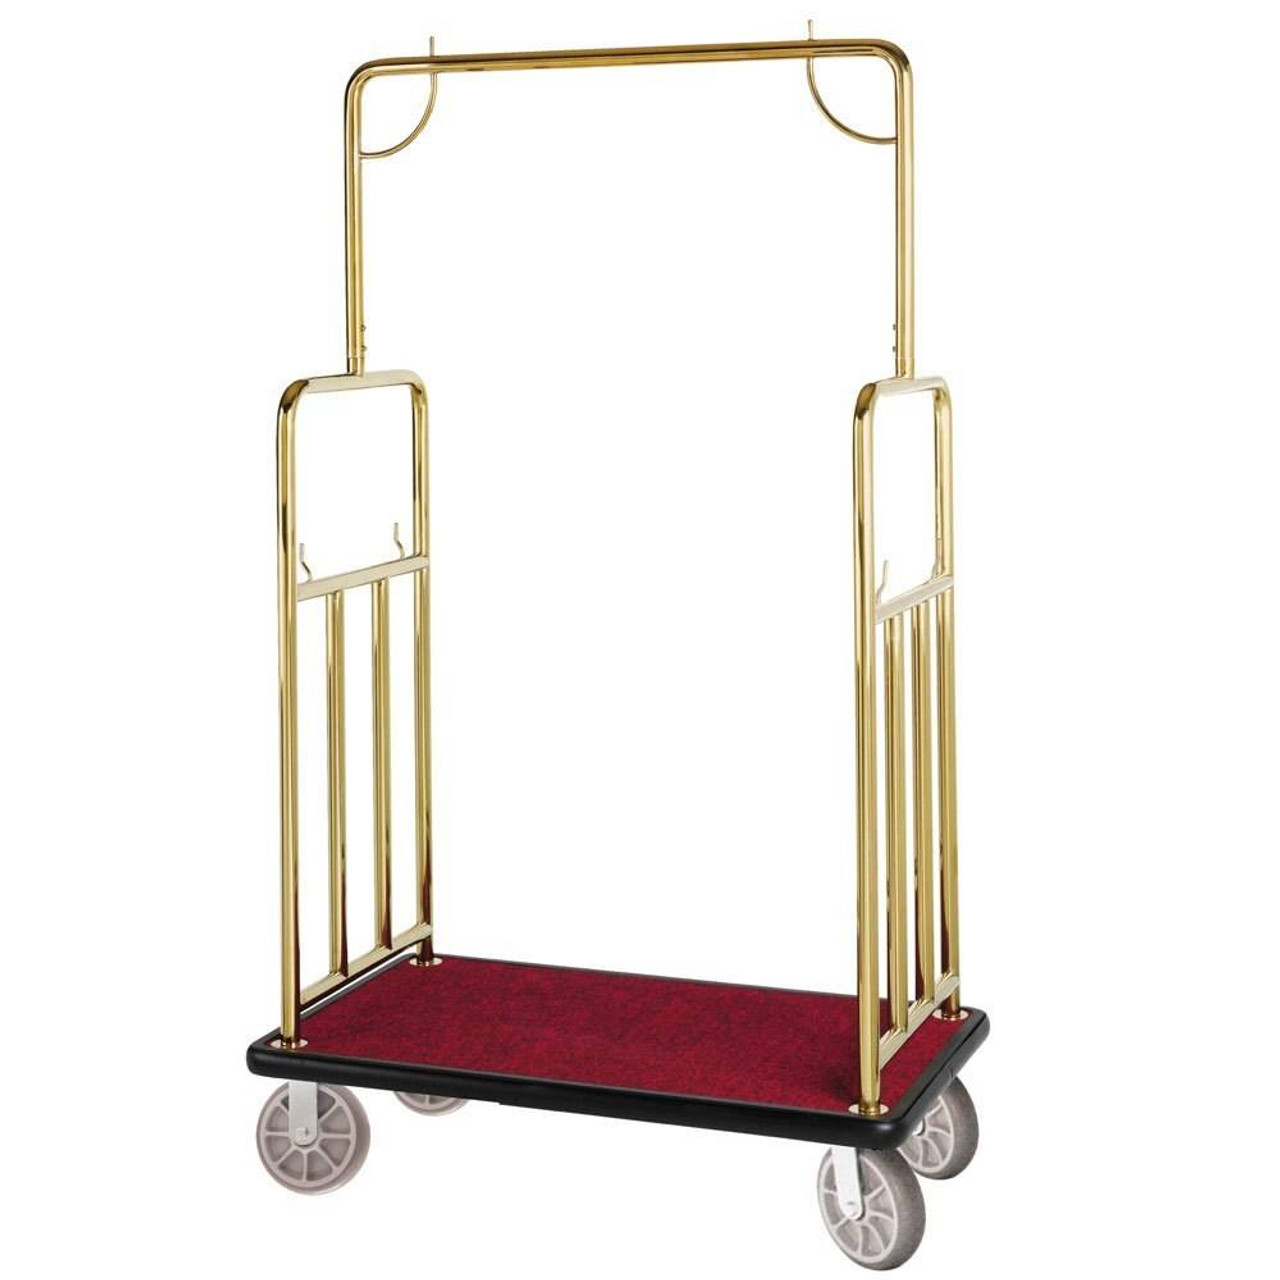 HOSPITALITY 1 SOURCE BELLMANS CART or CLASSIC SERIES - ALL STYLES